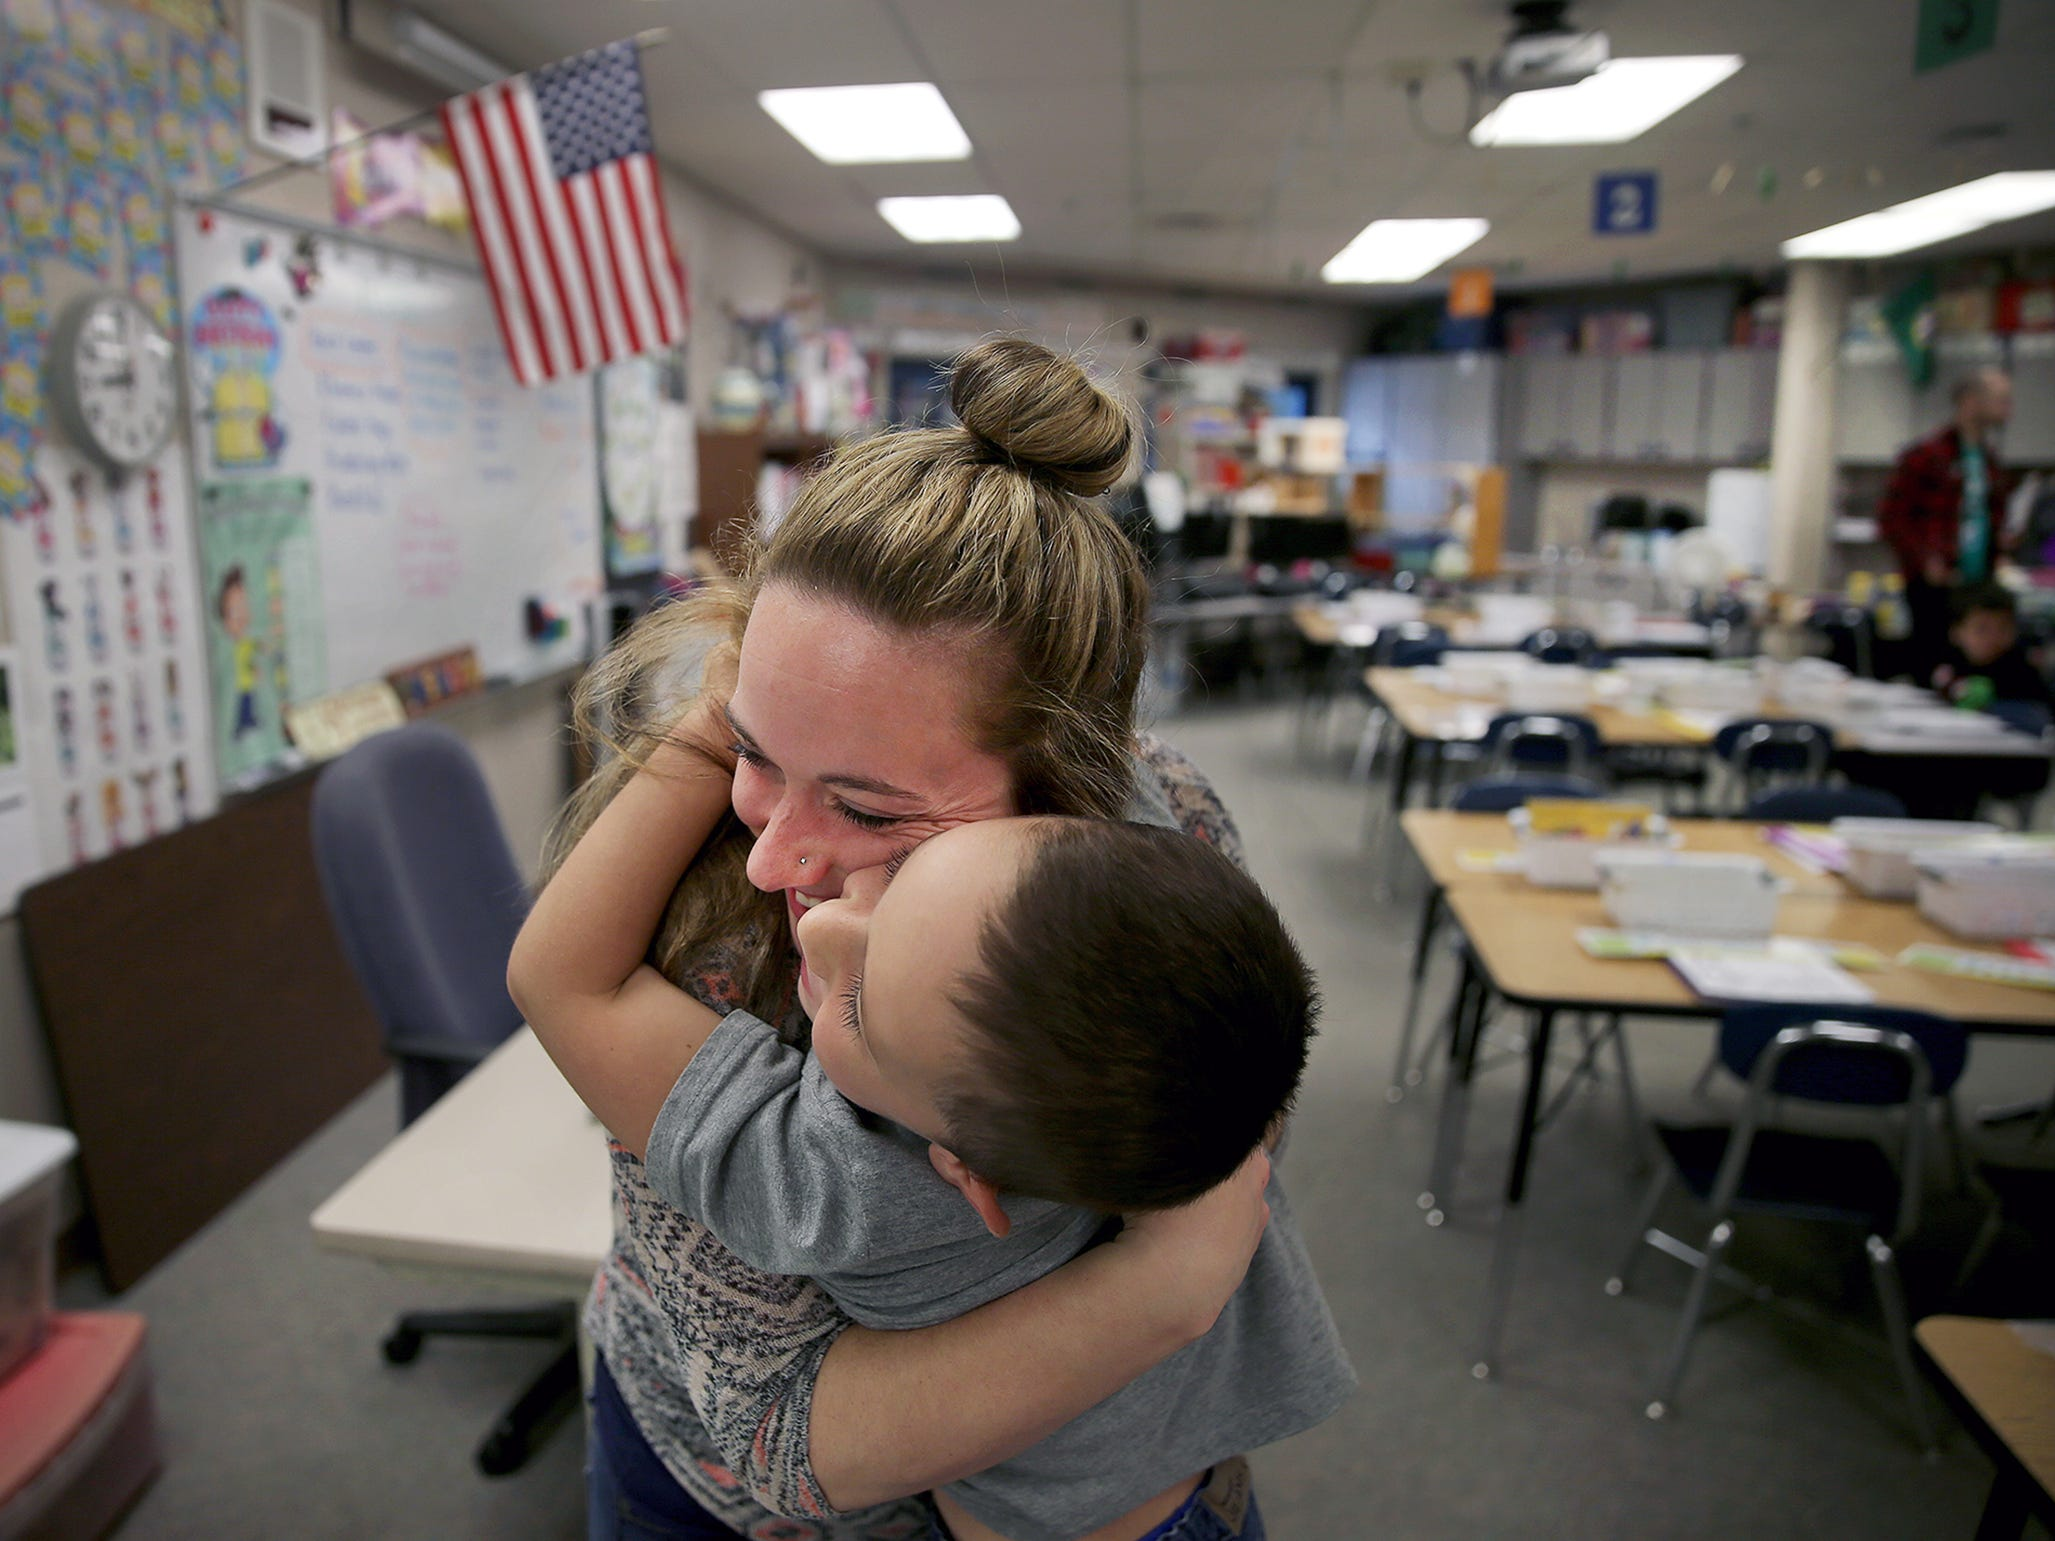 Amanda Rhea gives her son Carson, 6, a big hug as she leaves him in his first grade classroom for the first day of school at Kitsap Lake Elementary School on Wednesday, August 29, 2018.